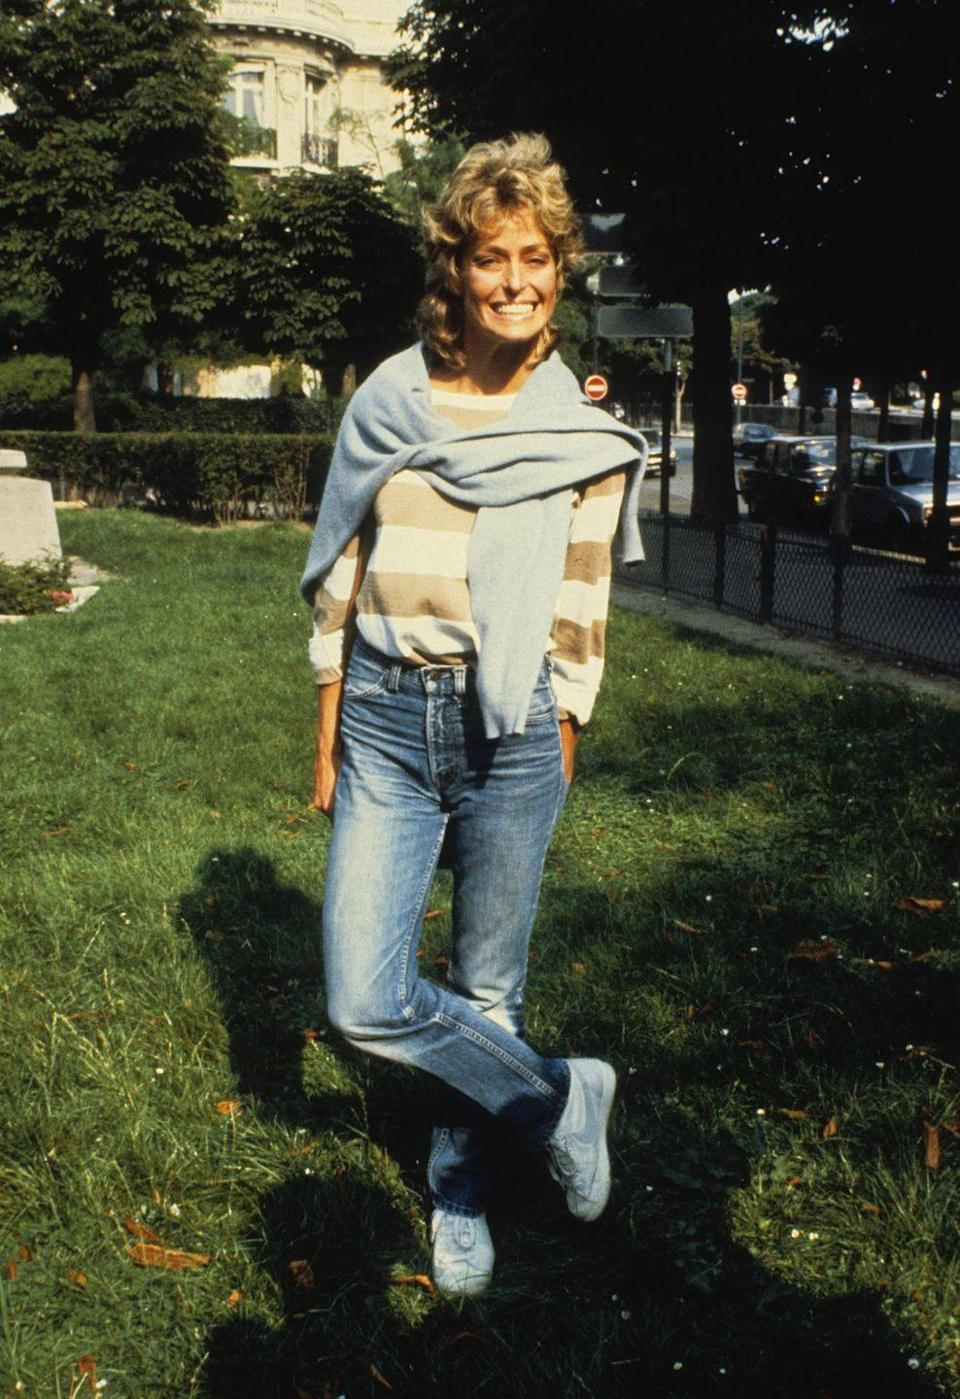 <p><em>Charlie's Angels </em>star Farrah Fawcett smiles for paparazzi in Paris. The actress, dressed comfortably in a striped sweater and jeans, was spending the day out with her then-boyfriend, French financier Arpad Busson.</p>